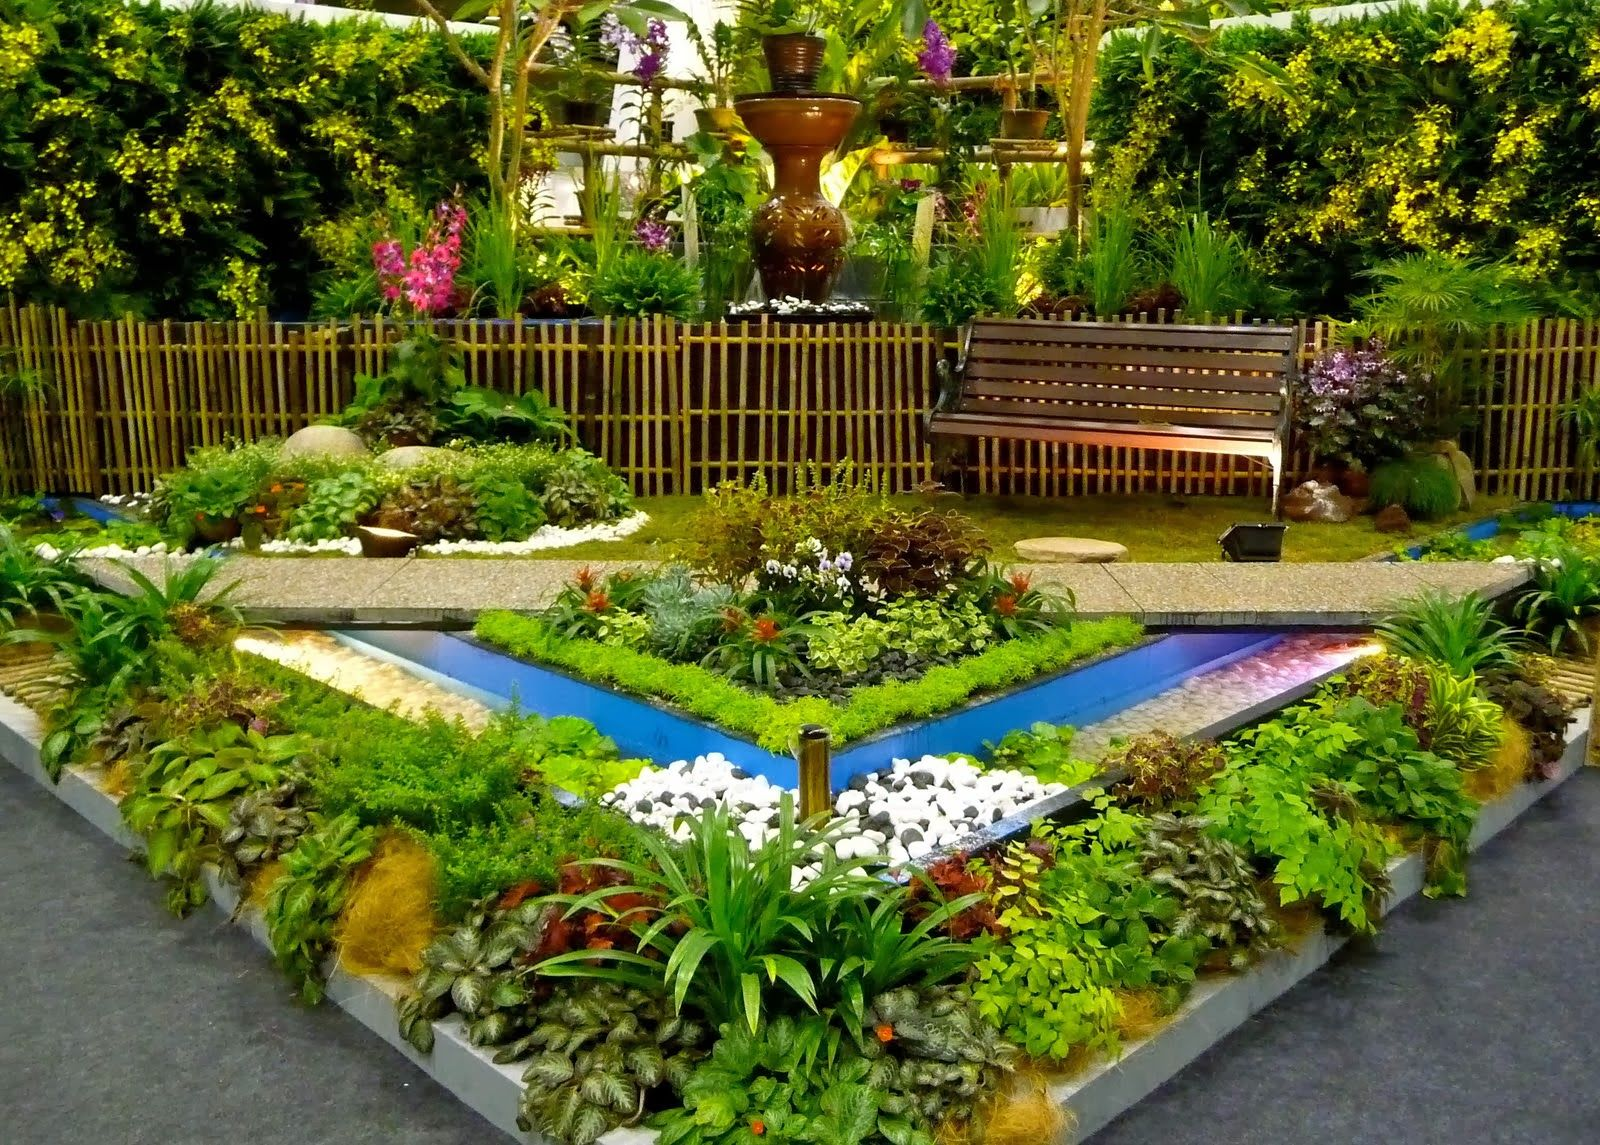 Best landscaping ideas i have ever seen wow design for Best apps for garden and landscaping designs